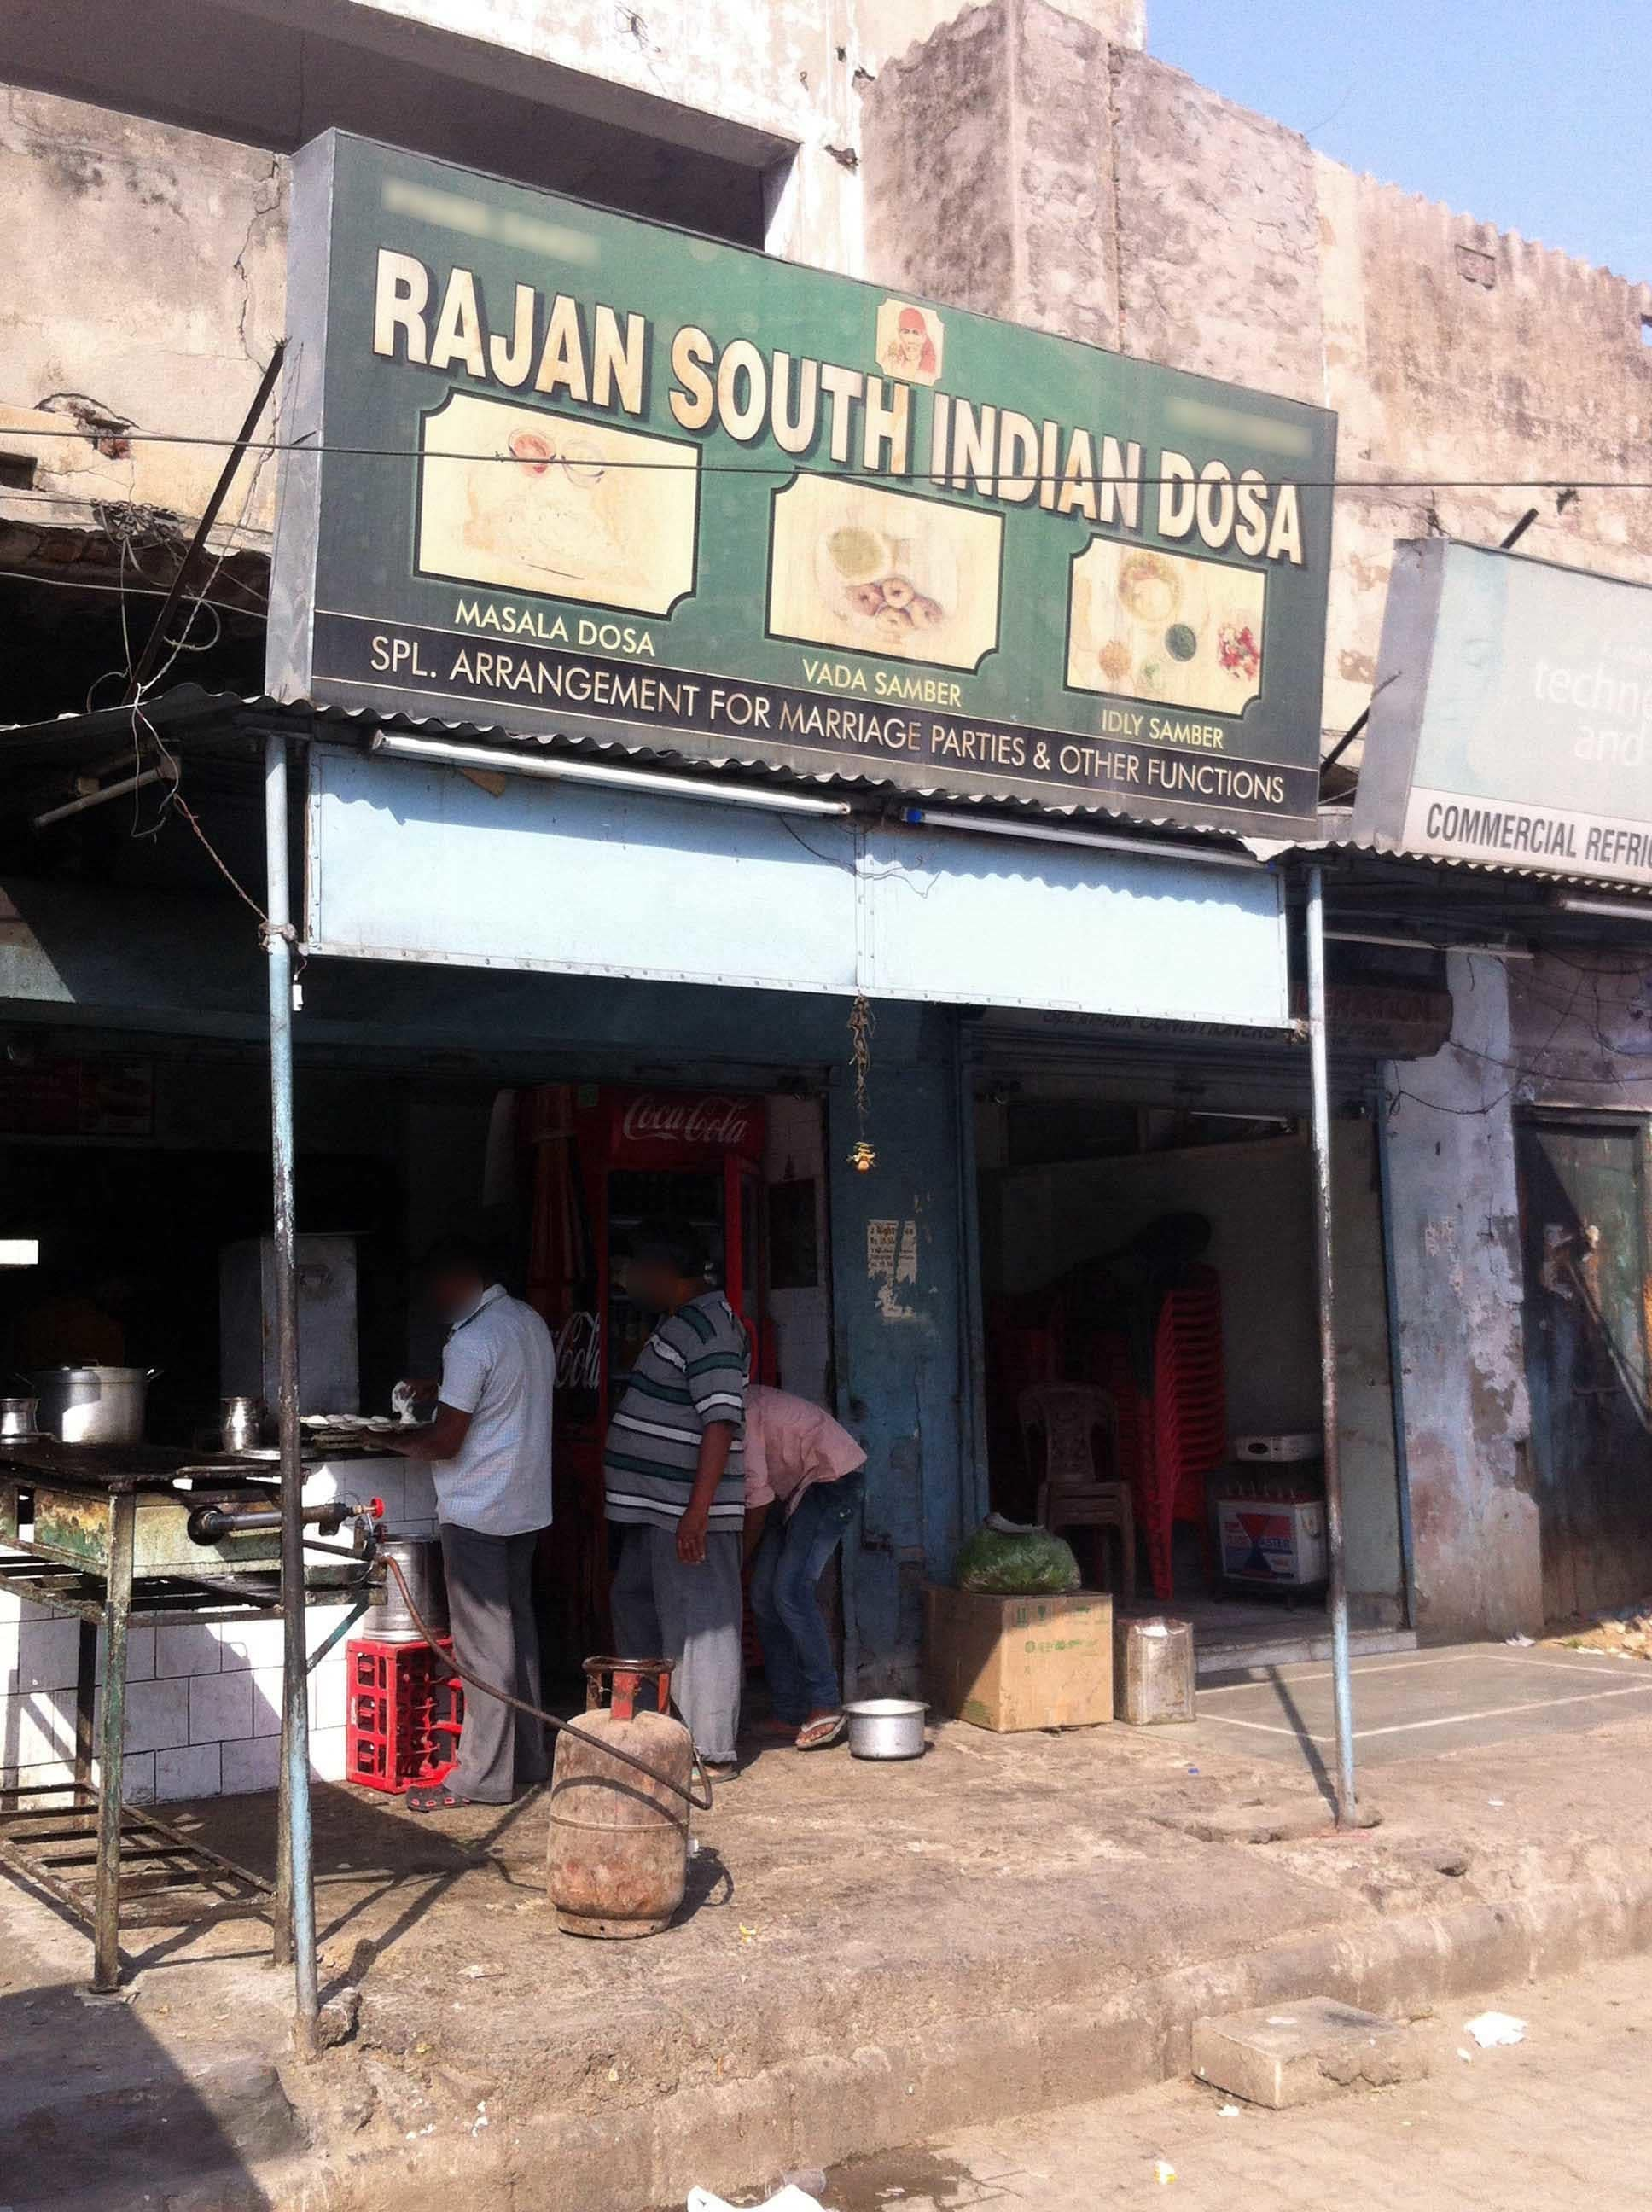 Rajan South Indian Dosa - Model Town - Ludhiana Image